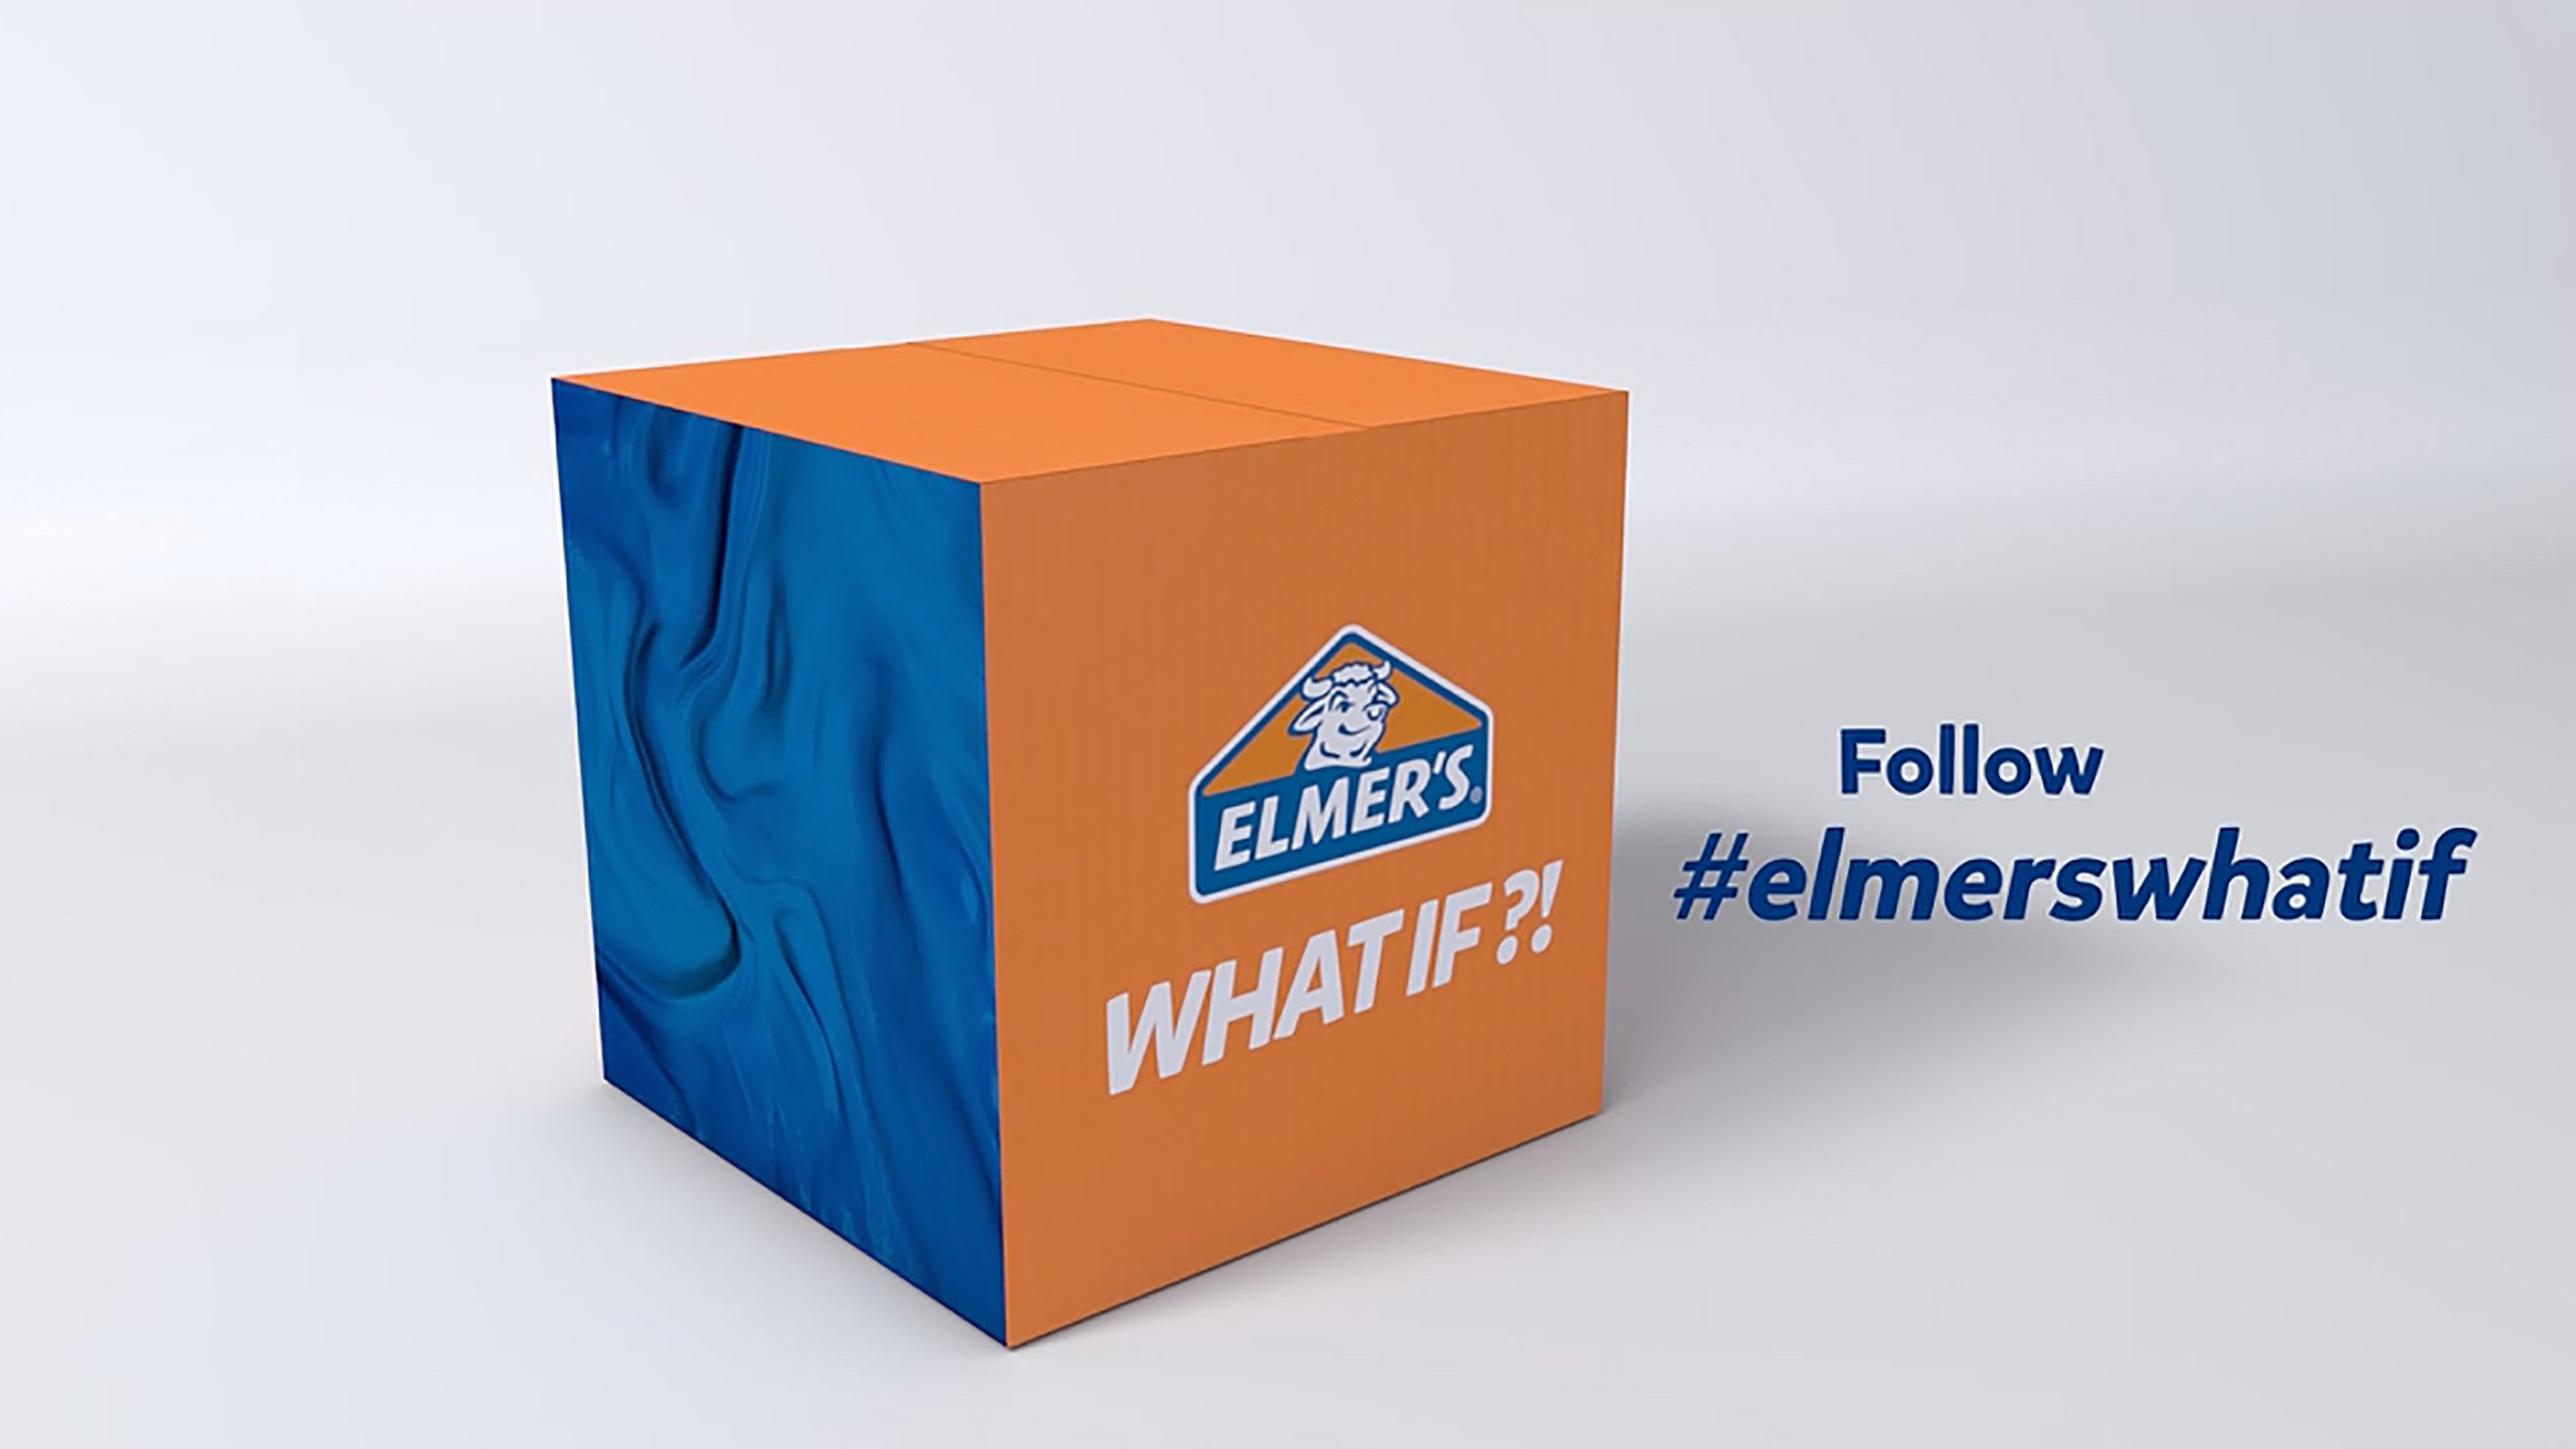 elmer's what if box